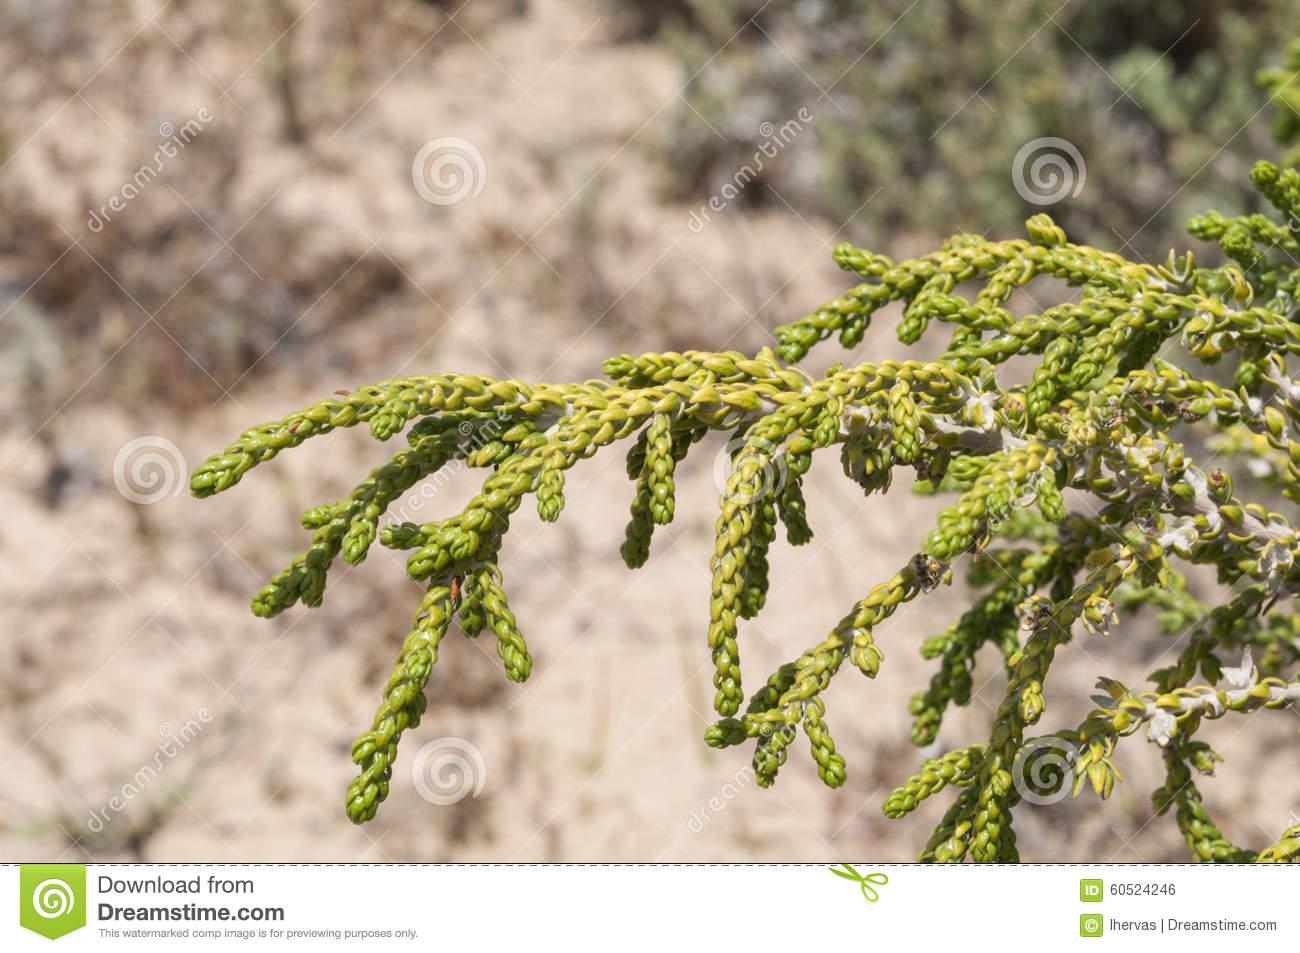 Thymelaea Hirsuta Stock Photo.